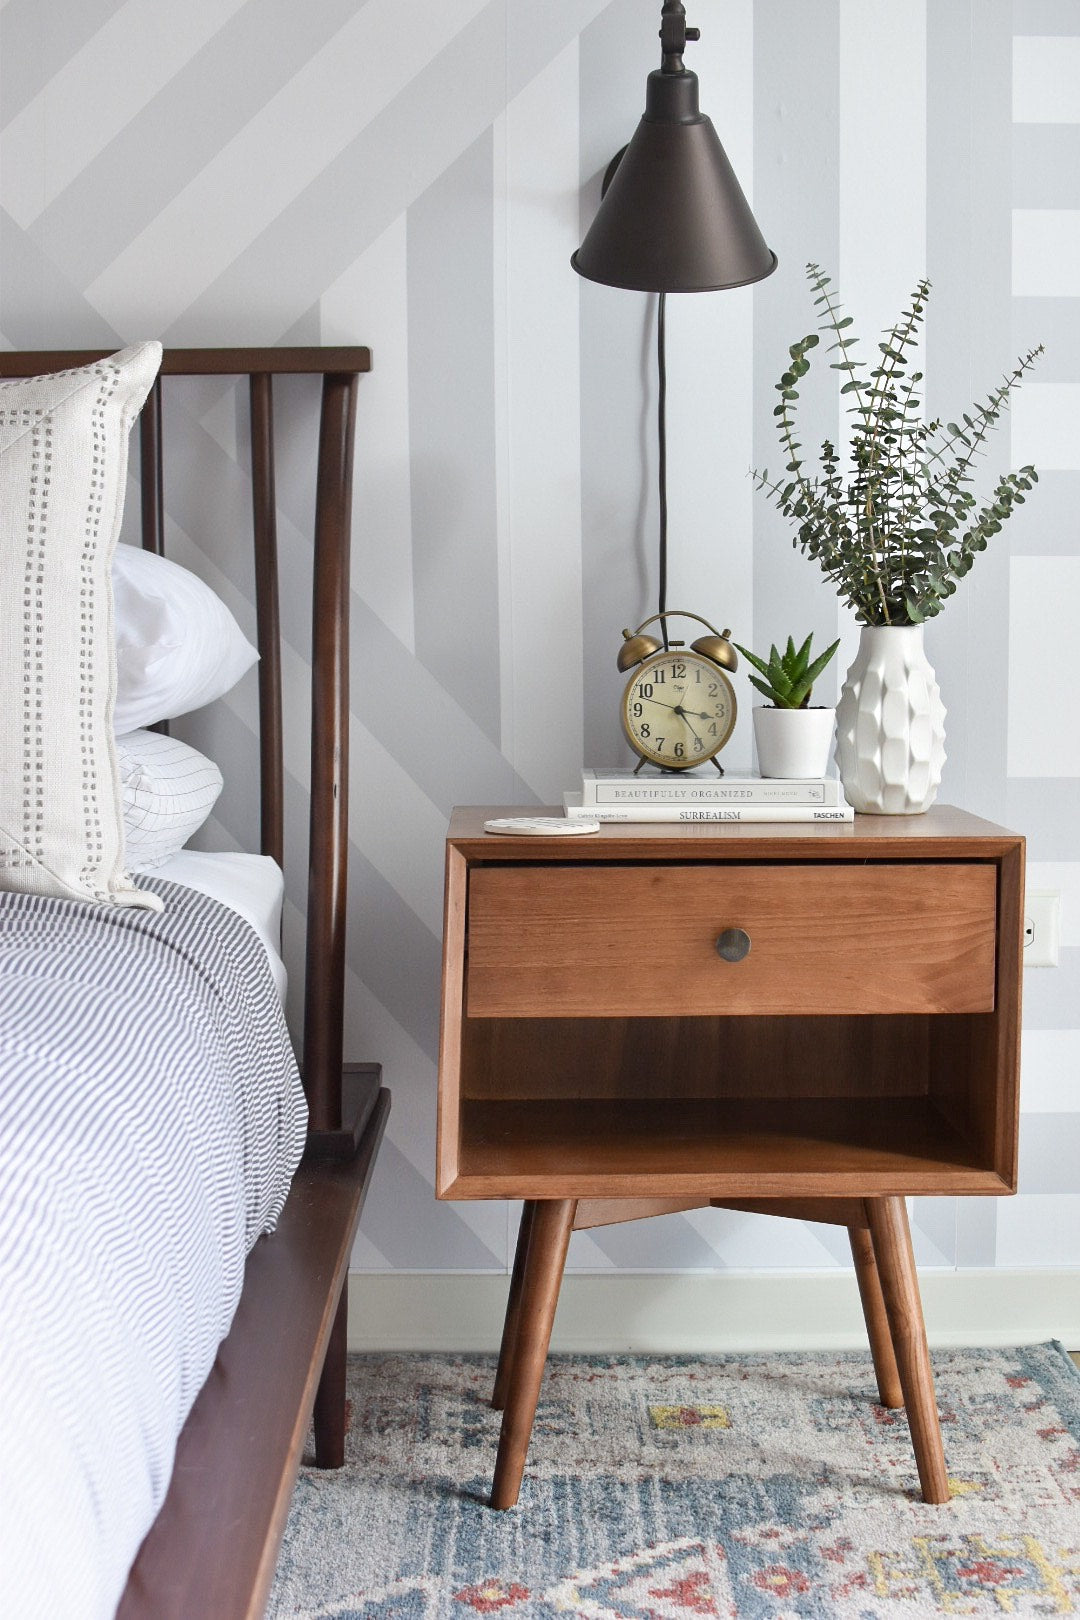 Mid century modern nightstand in master bedroom with geometric design removable wallpaper and neutral color bed linen